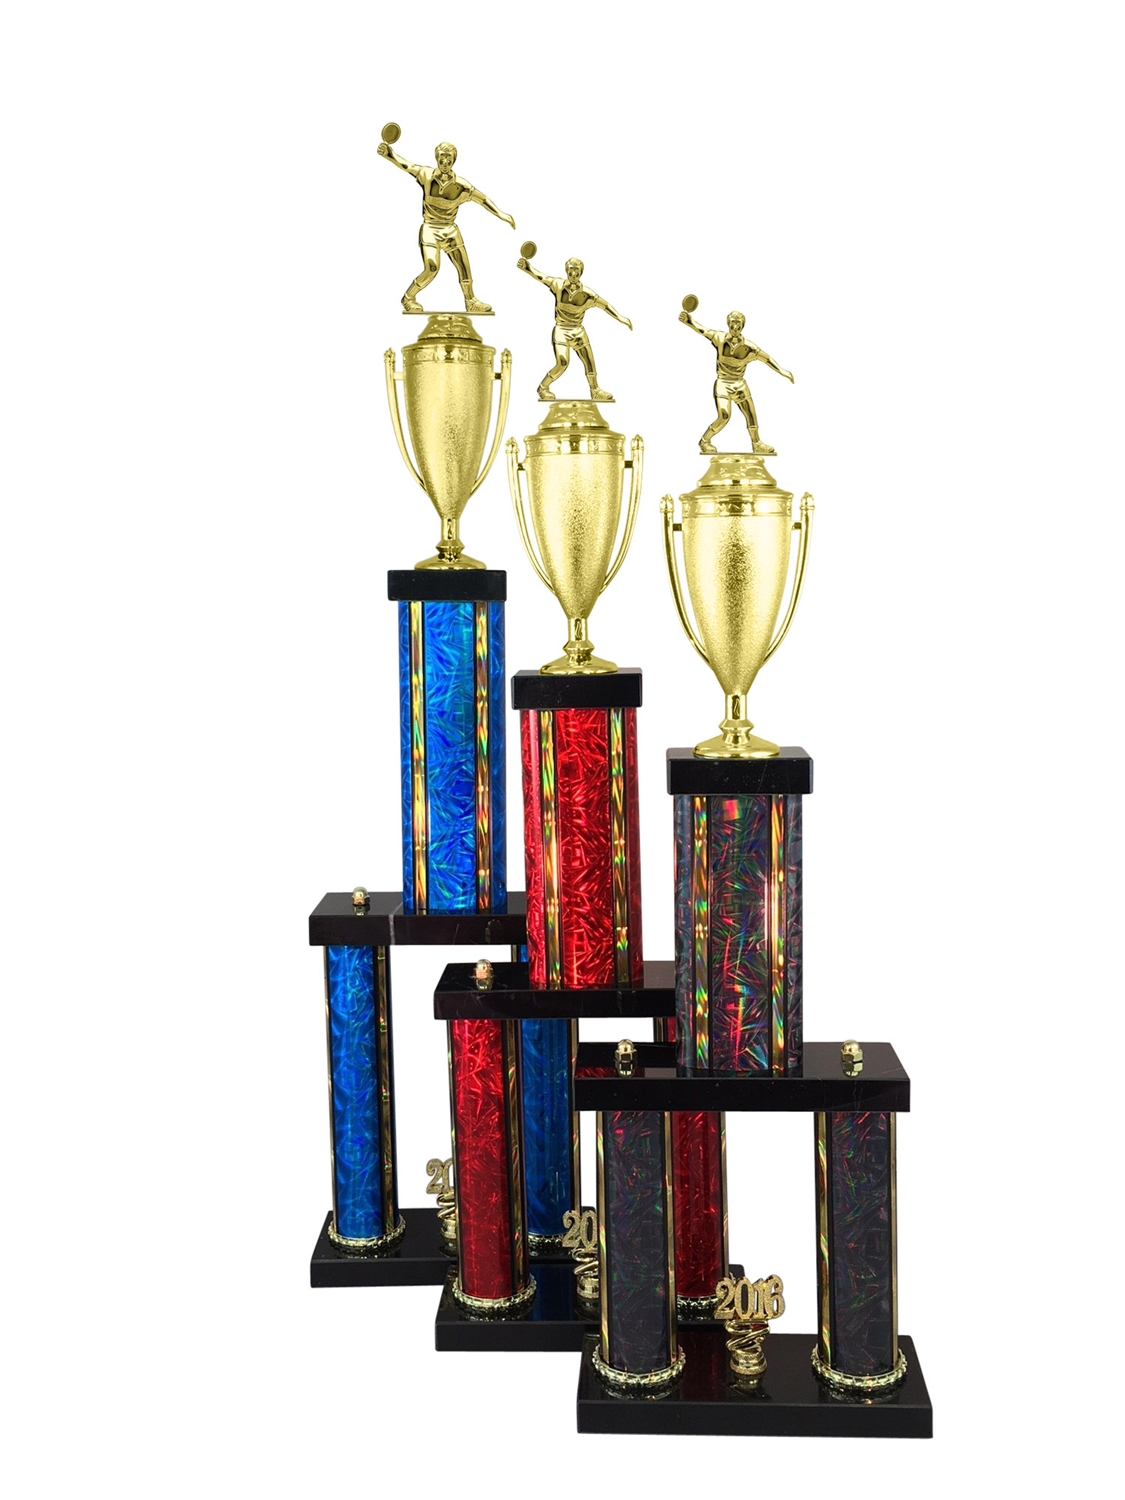 Male Ping Pong Trophy Available in 11 Color & 6 Size Options